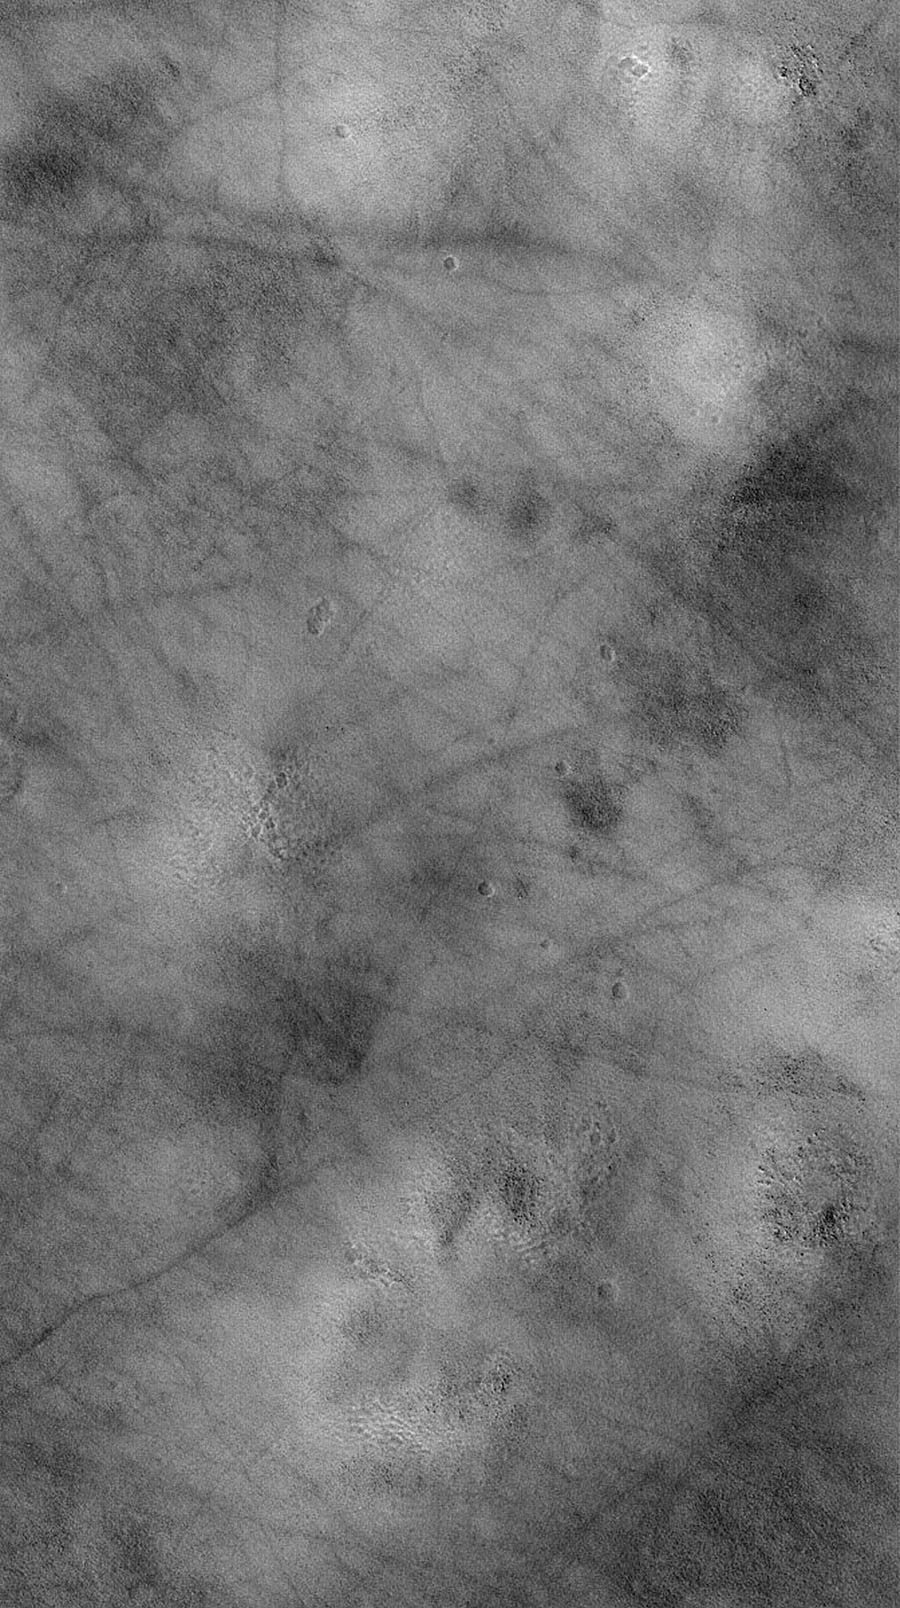 NASA's Mars Global Surveyor shows a typical view of the vast martian northern plains. The dark, filamentary streaks were most likely formed by passing dust devils.